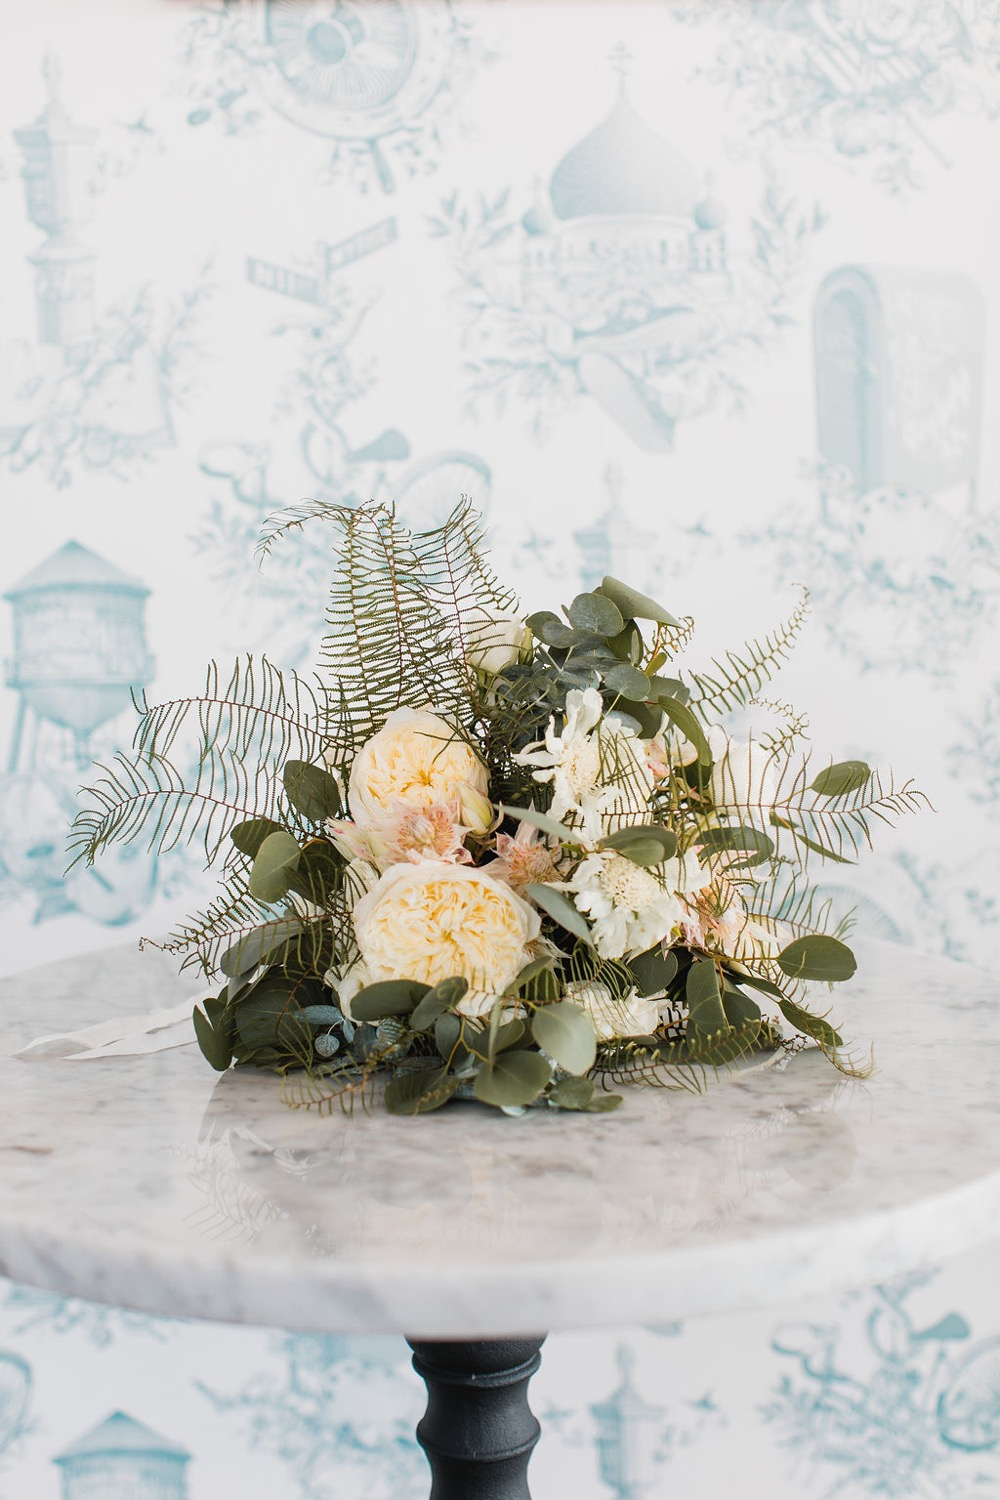 Bride's bouquet made by Mimosa Florals, featuring cream and light peach flowers and lots of greenery. Taken at the Wythe Hotel in Brooklyn.